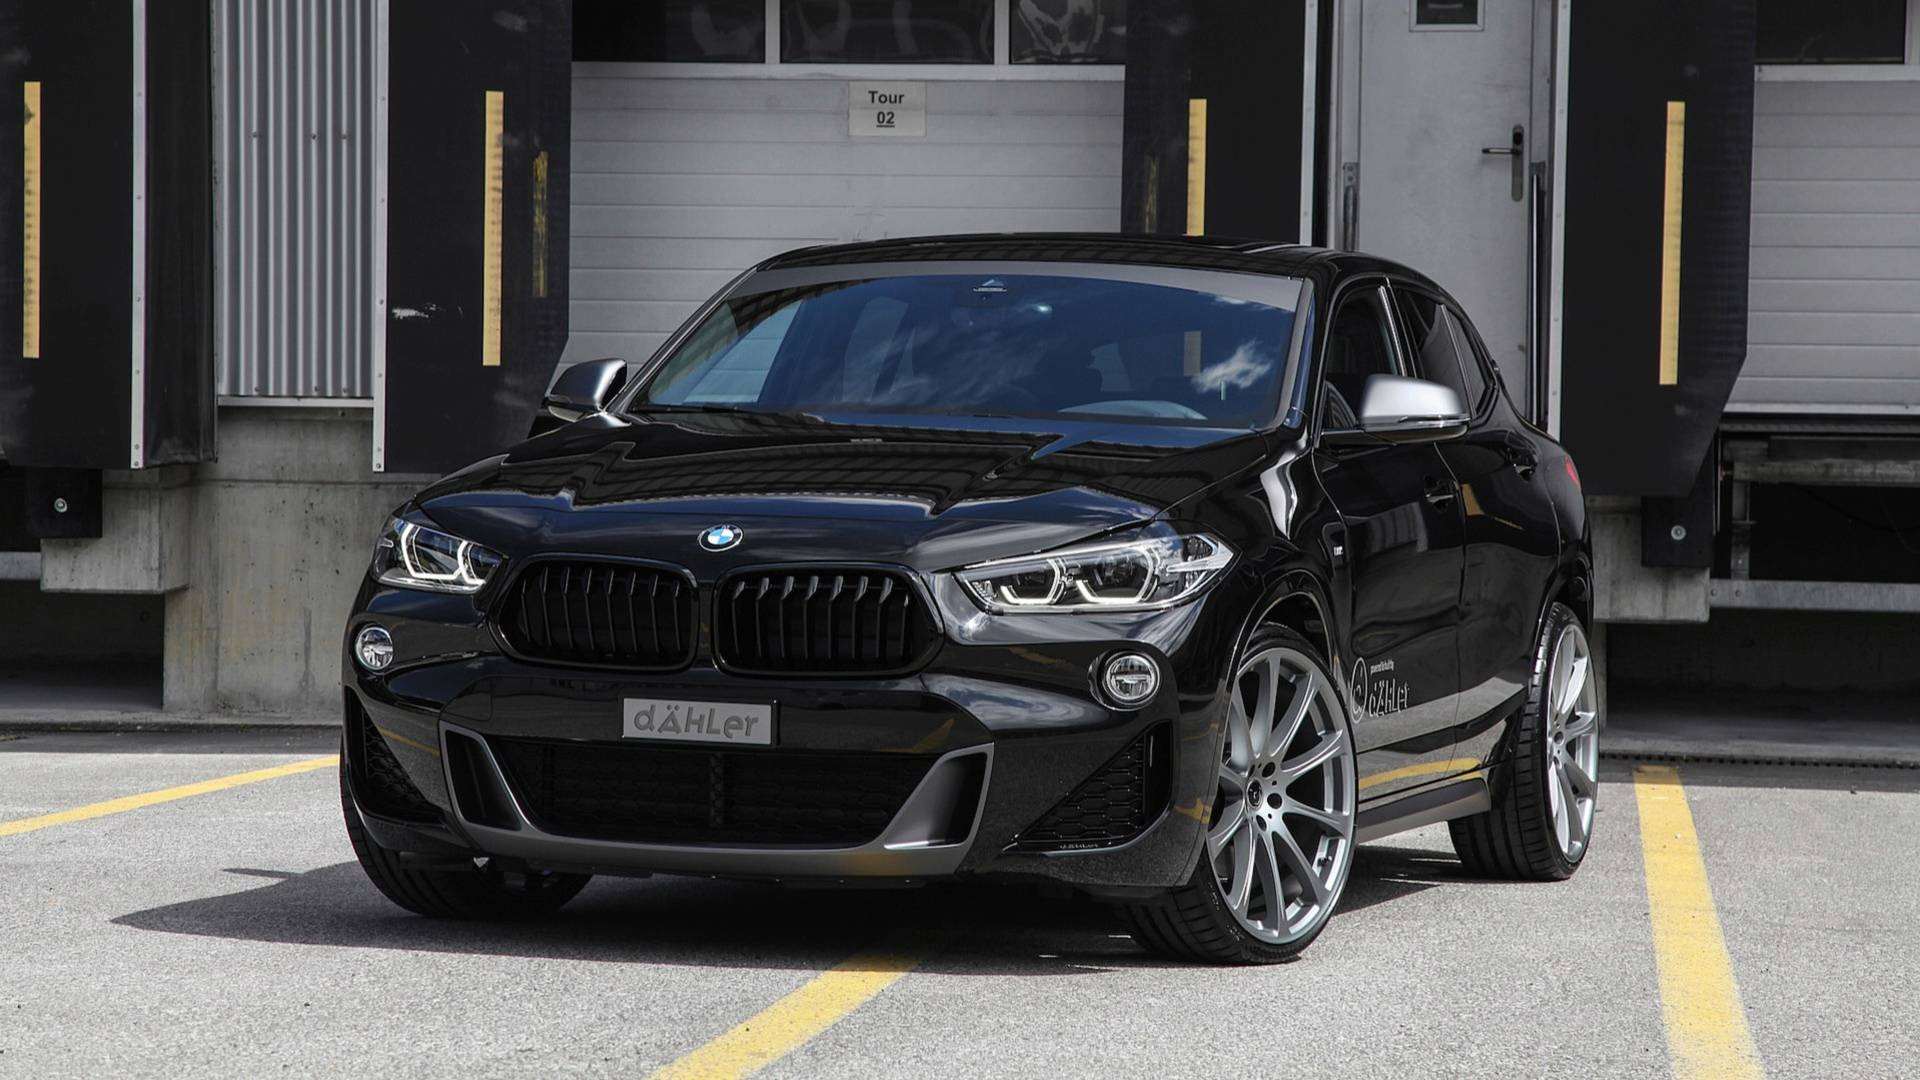 BMW X2 by Dahler (2)